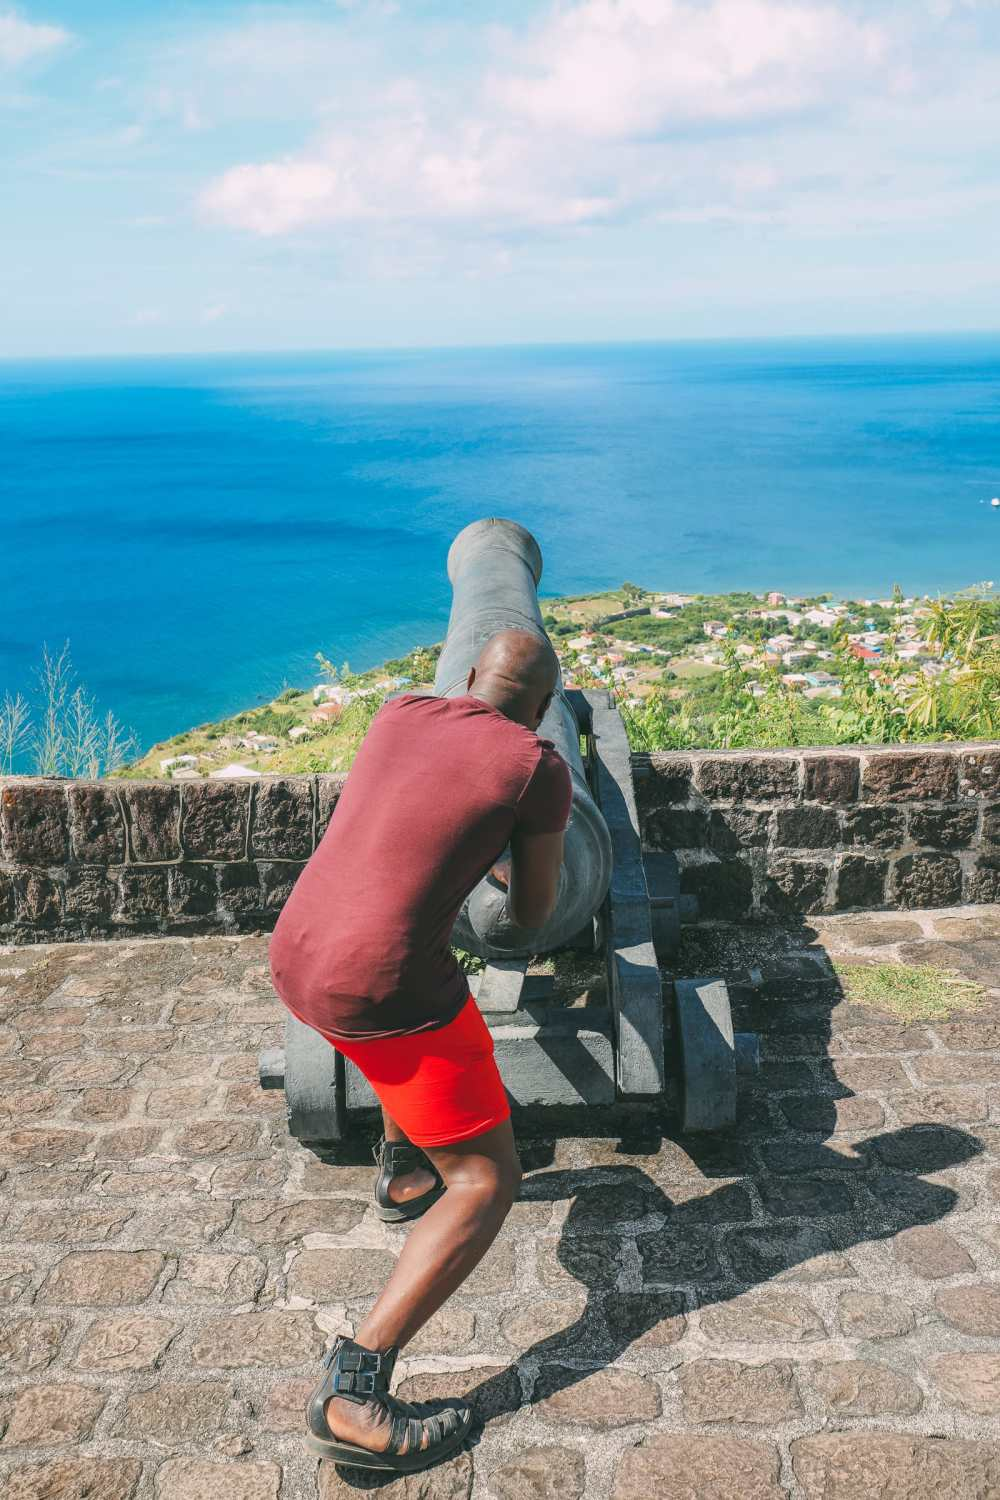 Rugged Coastlines, Old Forts And Lobster Dinners... On The Caribbean Island Of St Kitts (41)